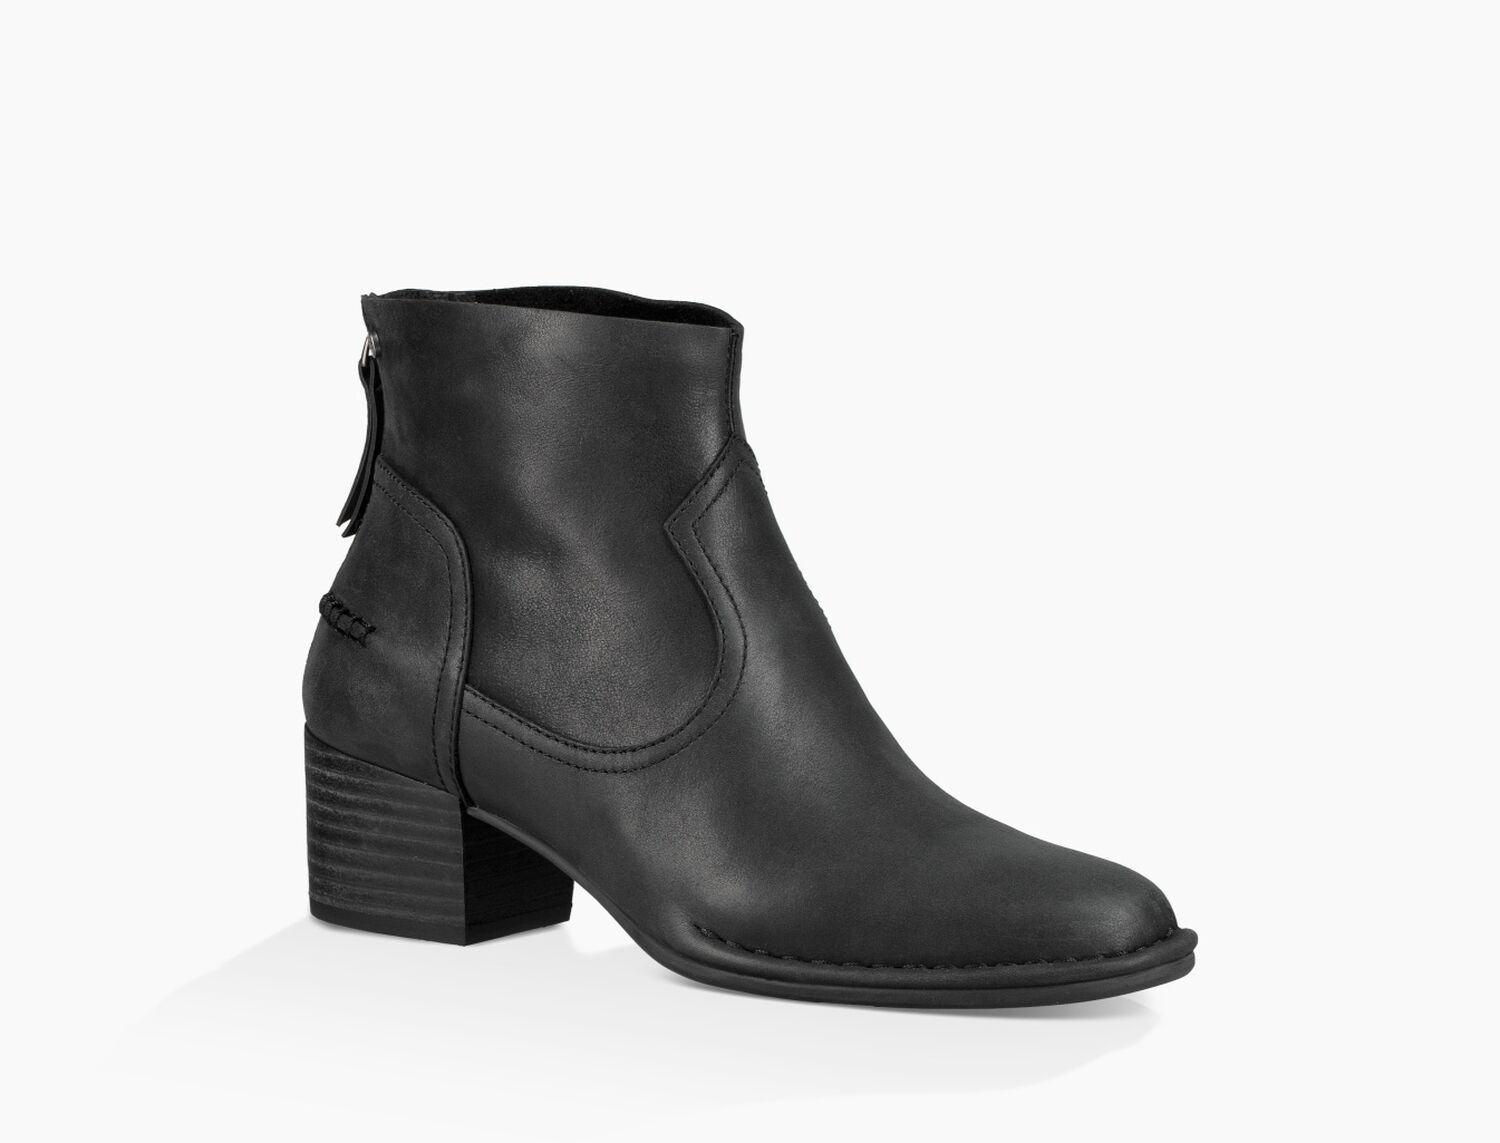 4b0928246b6 Women's Share this product Bandara Ankle Boot